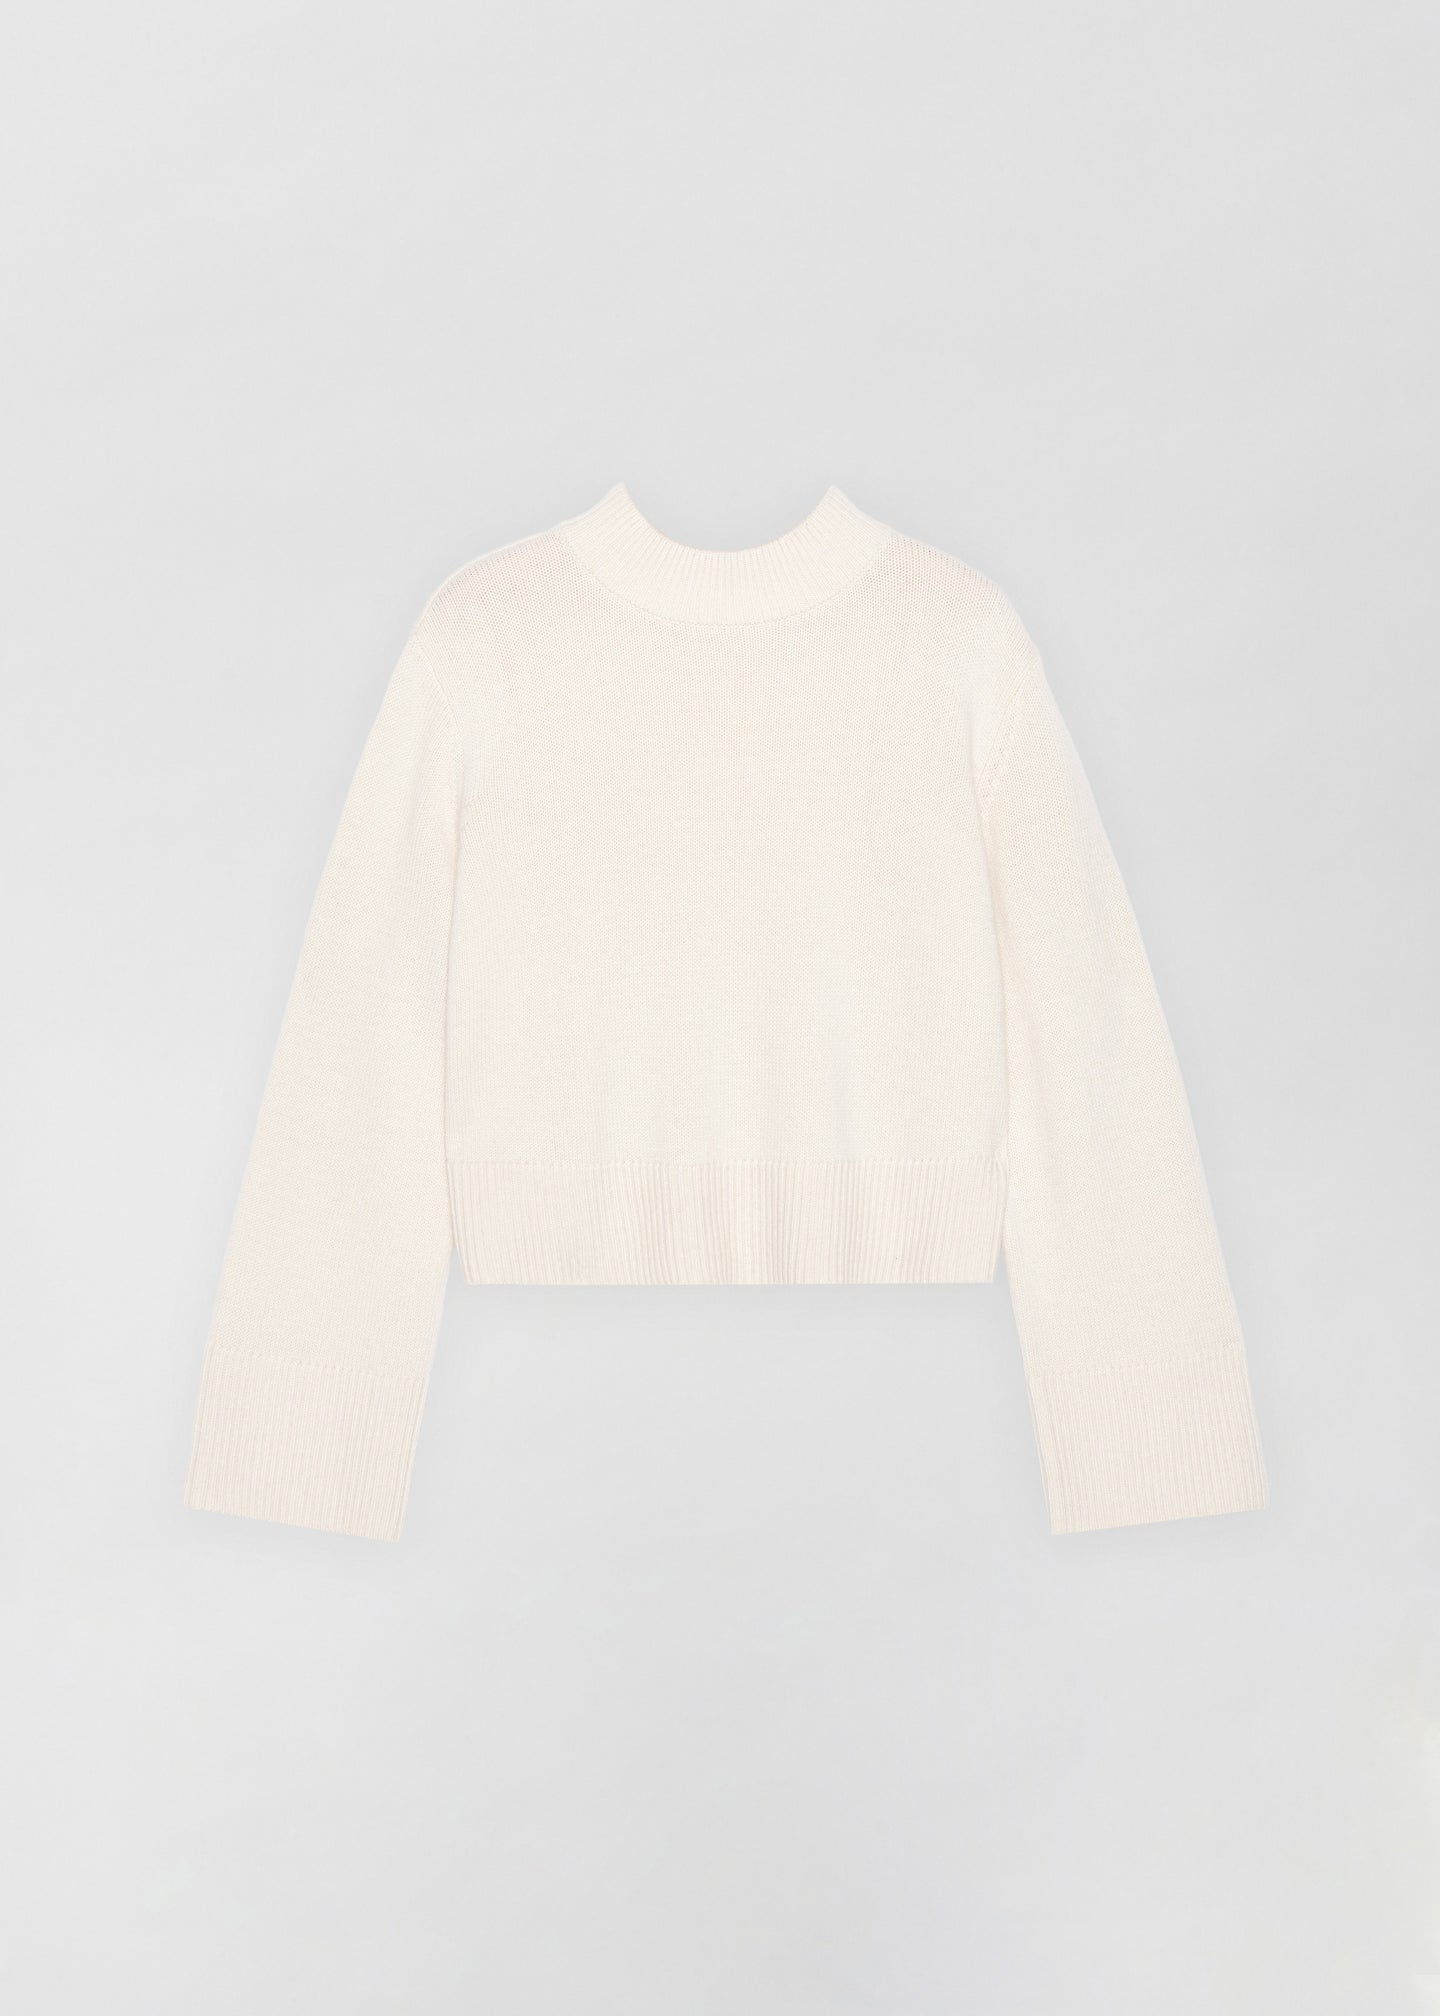 CO - Boxy Crew Neck Sweater - Ivory